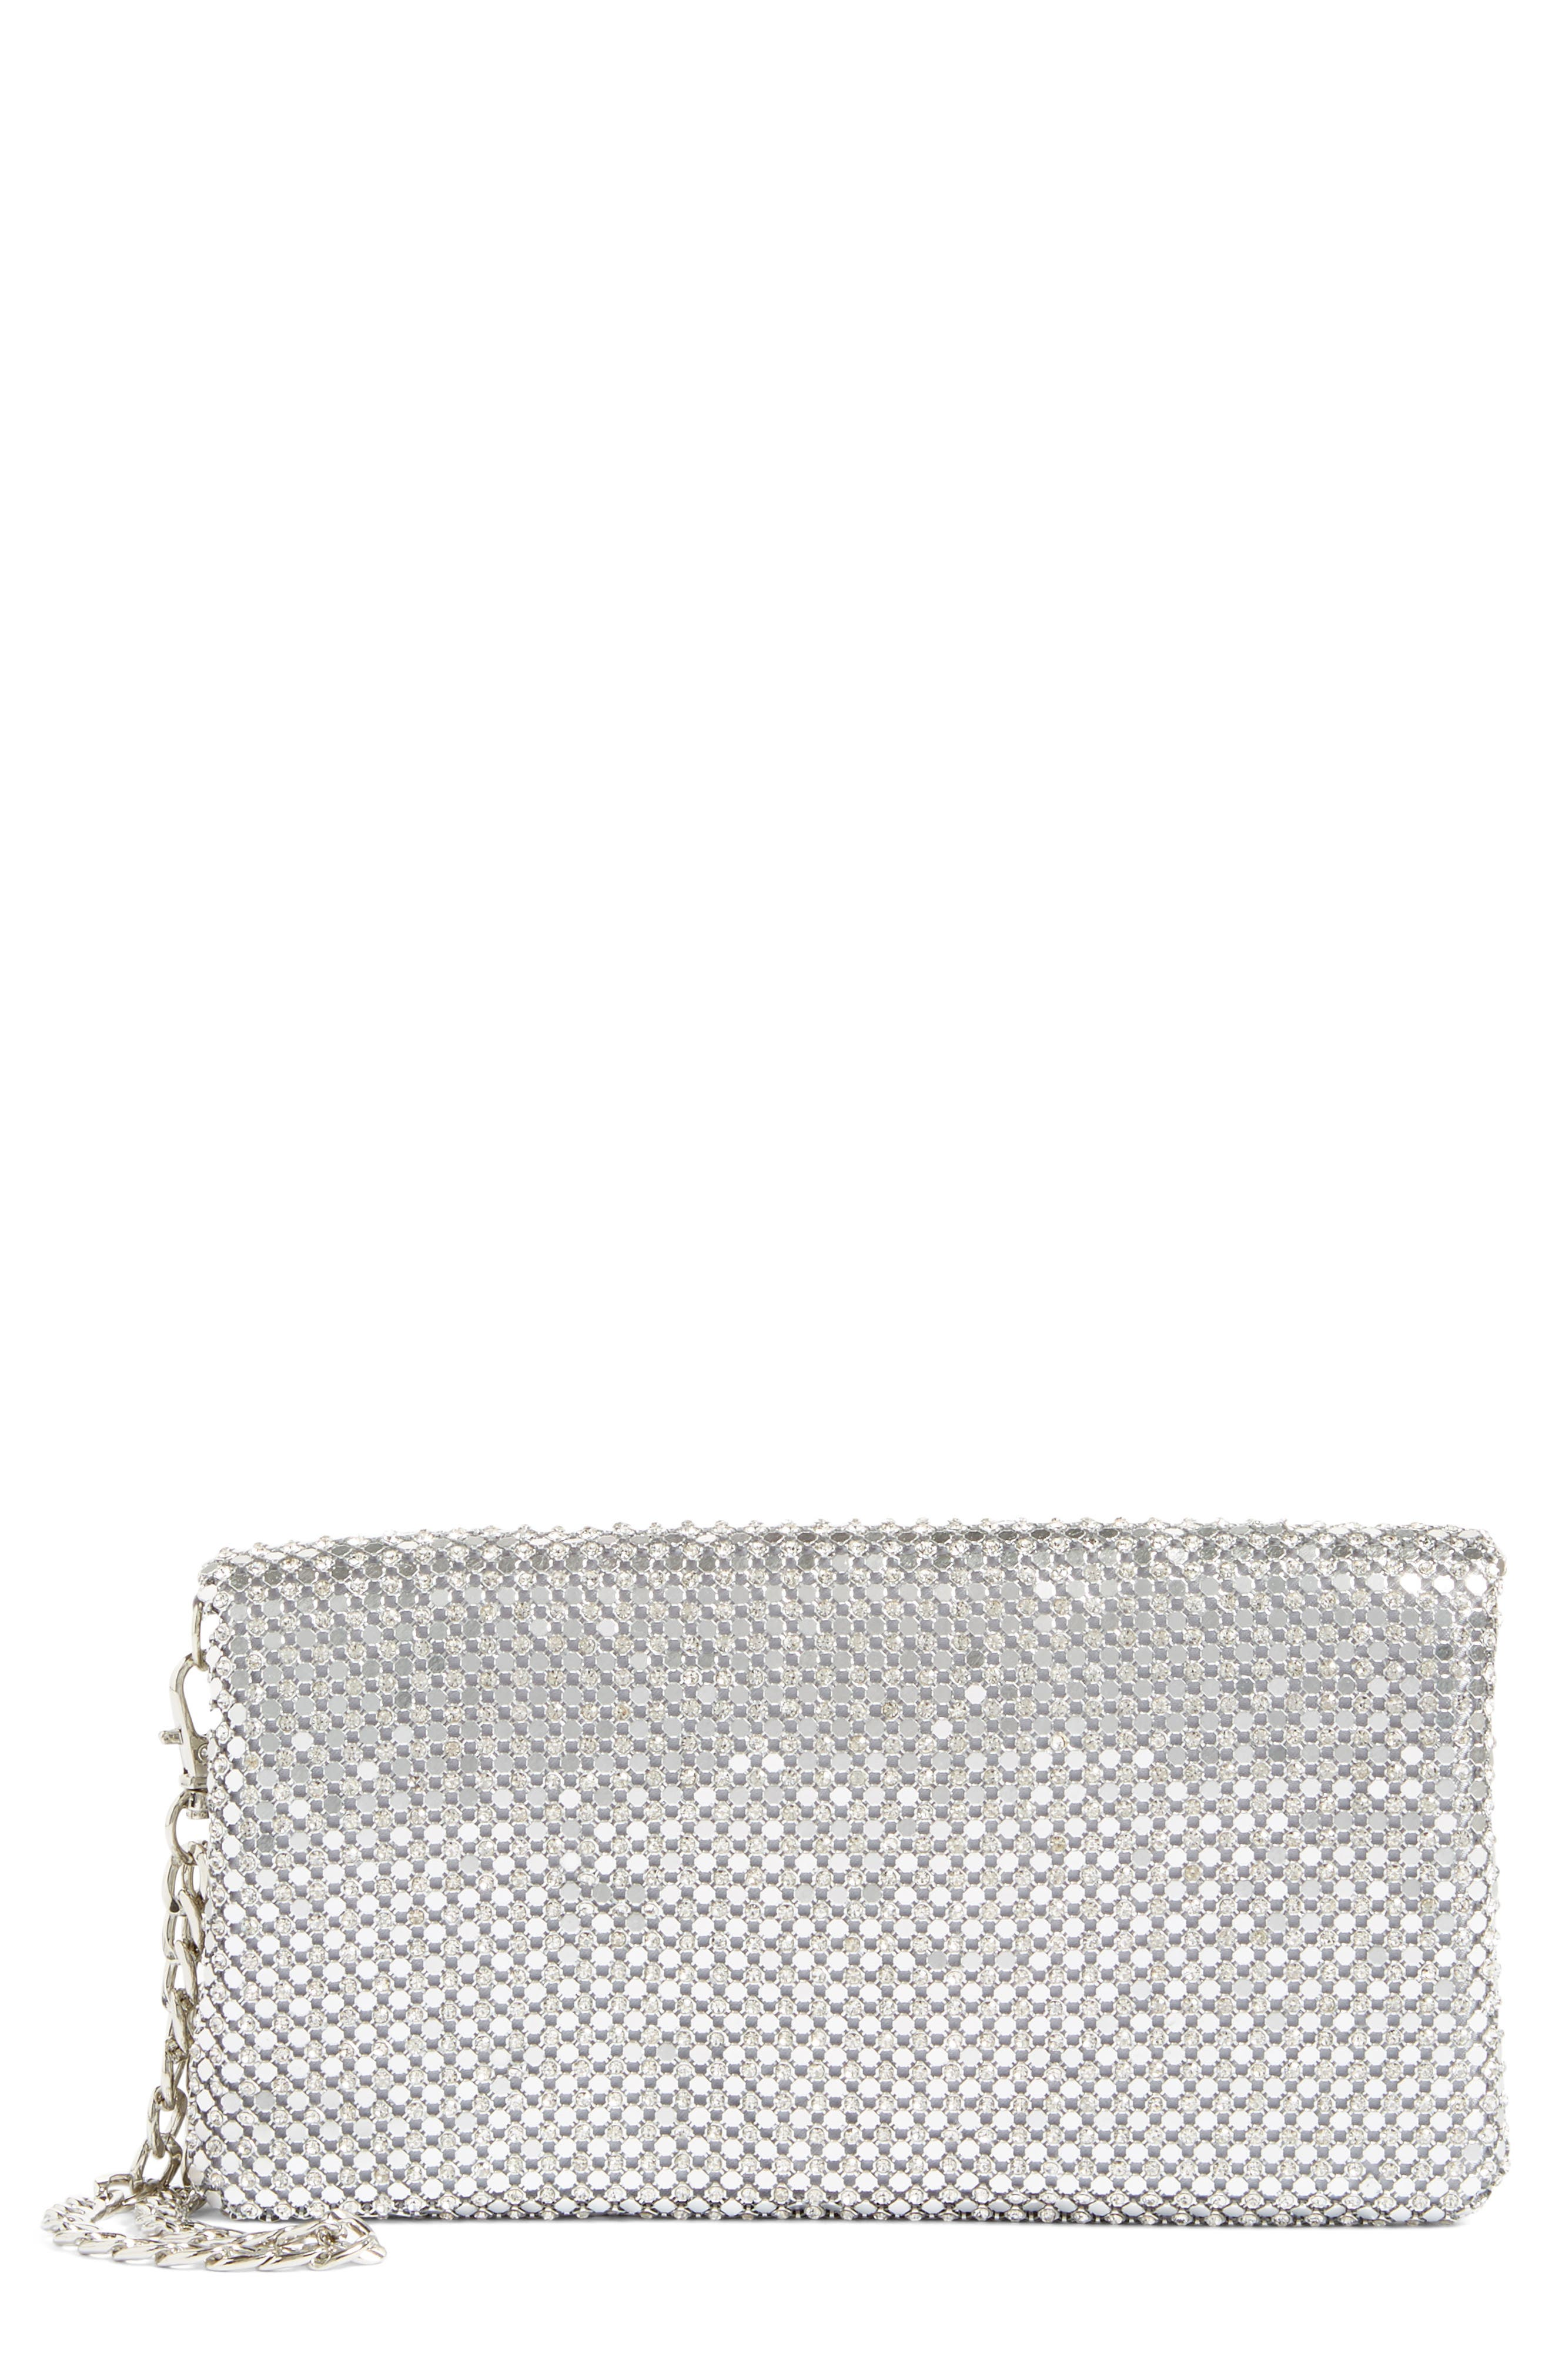 Alternate Image 1 Selected - Glint Crystal Mesh Foldover Clutch